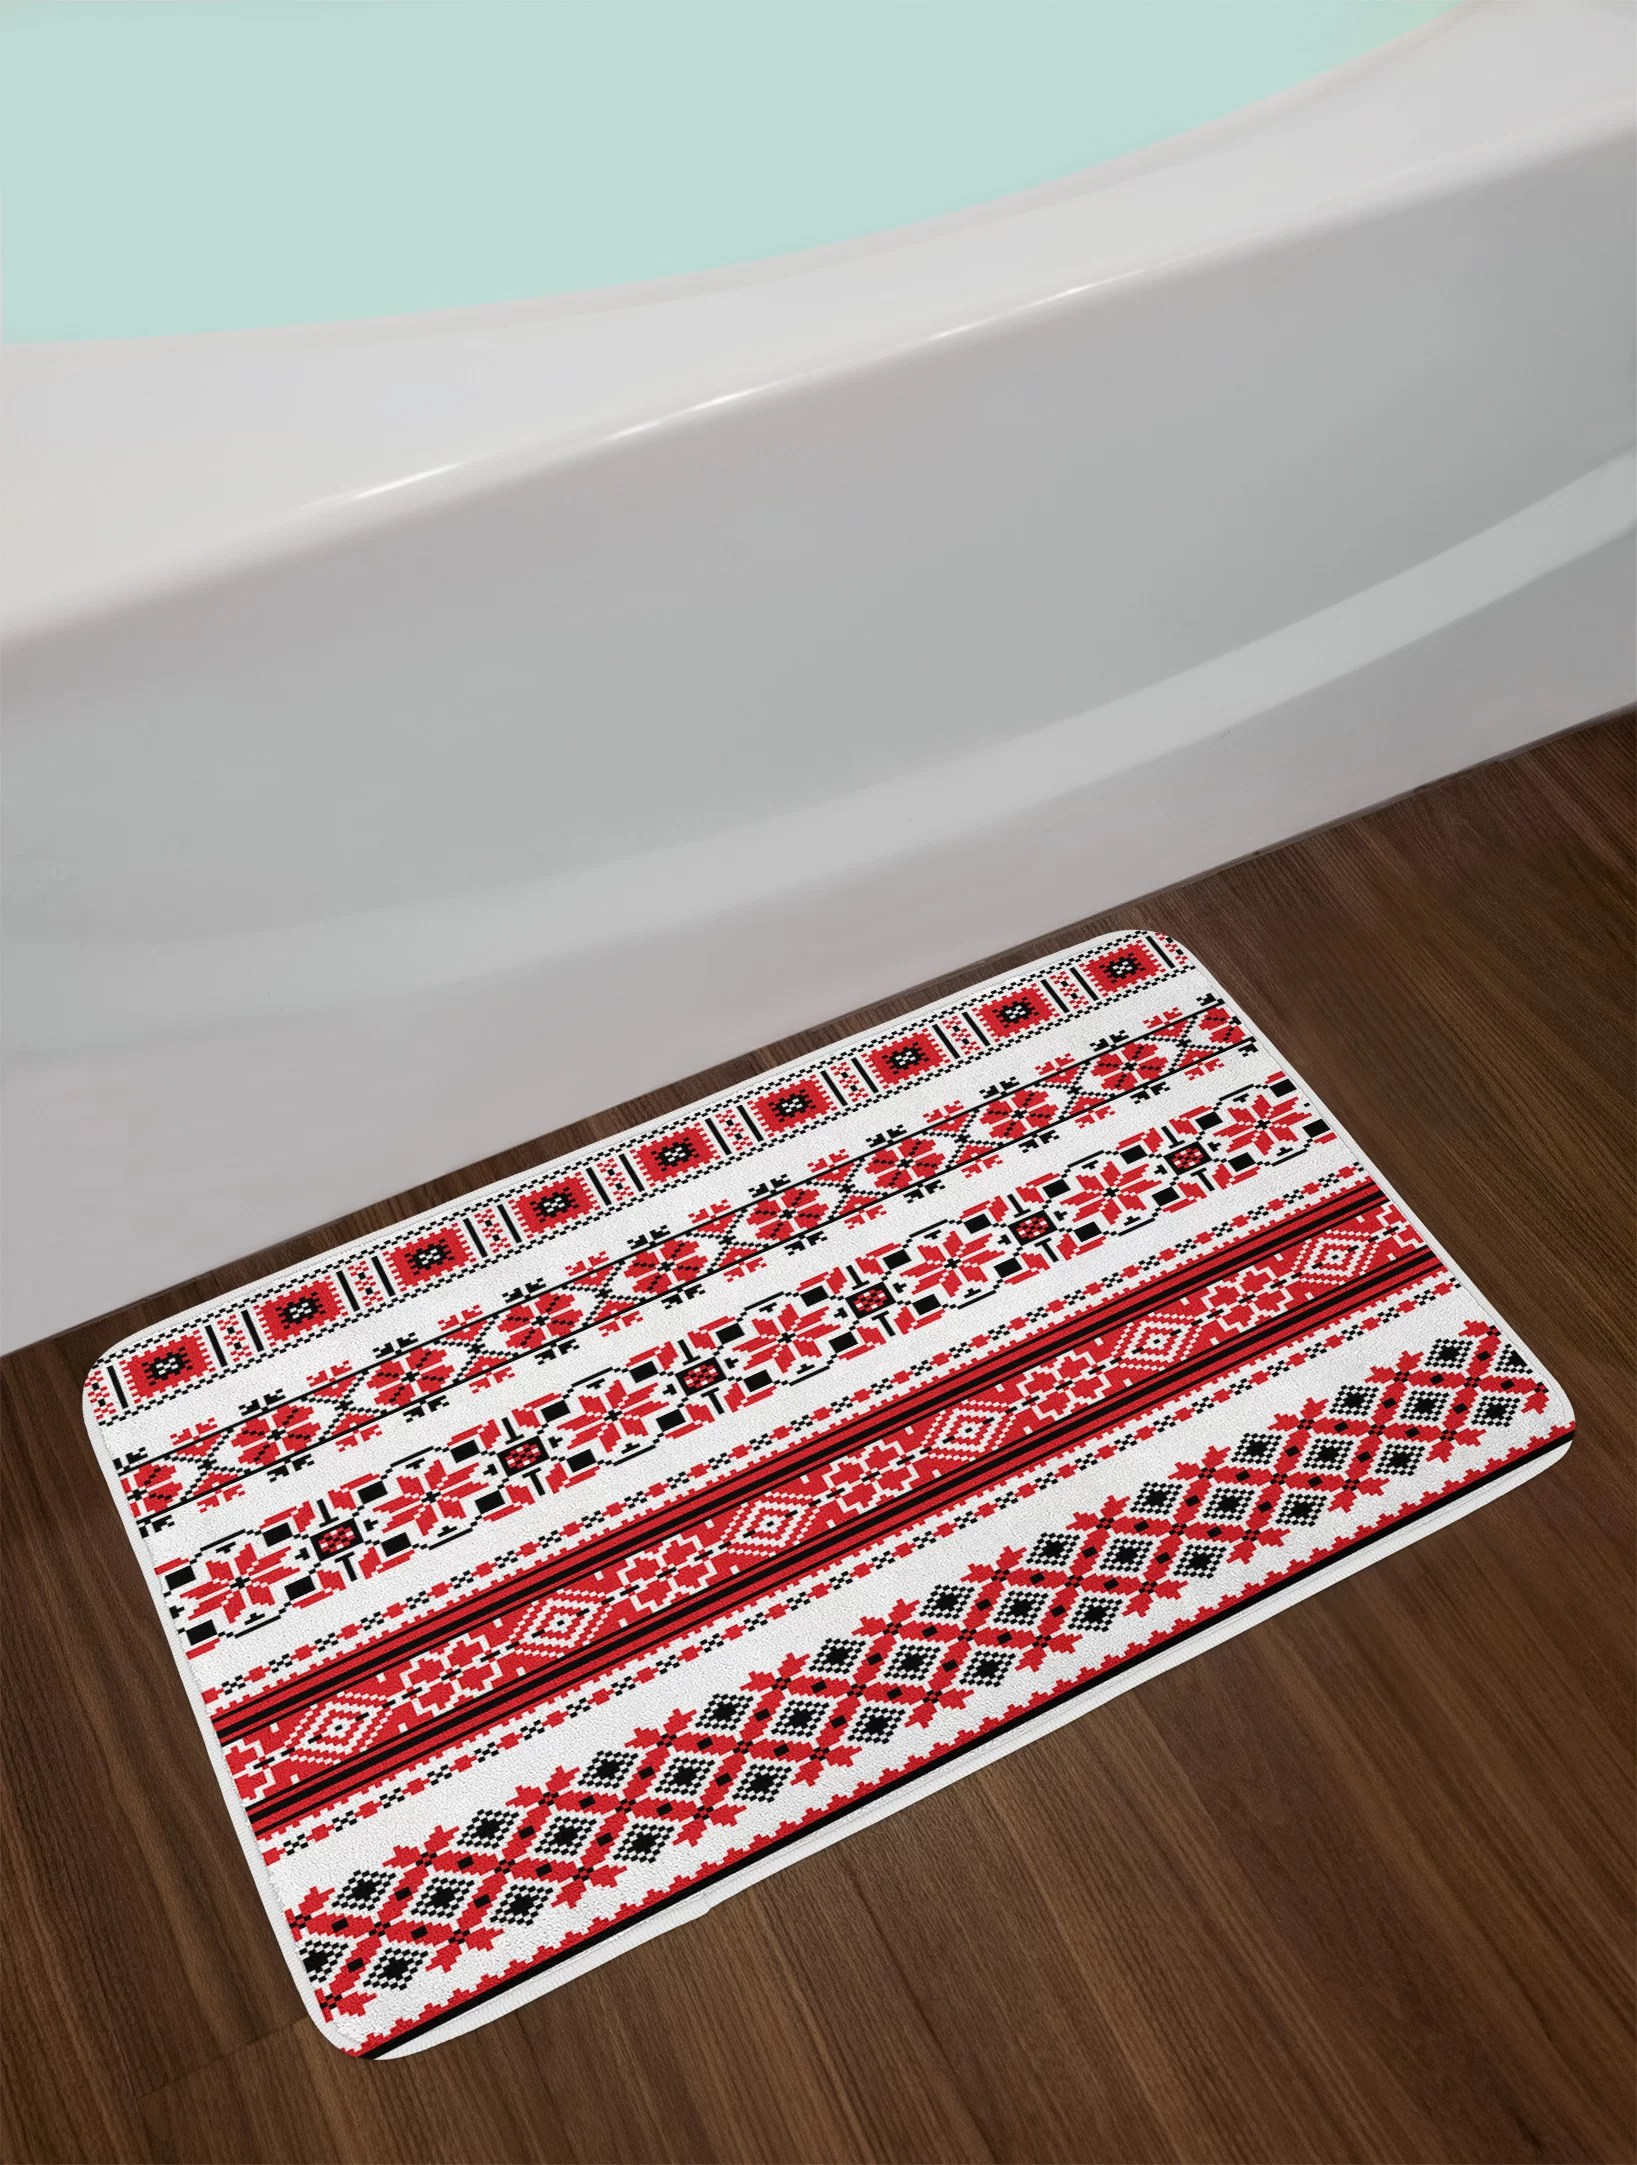 Red Bathroom Rug Ambesonne Red Bath Mat By Ukrainian Needlework Illustration Ethnic Traditional Accents Arts And Crafts Theme Plush Bathroom Decor Mat With Non Slip